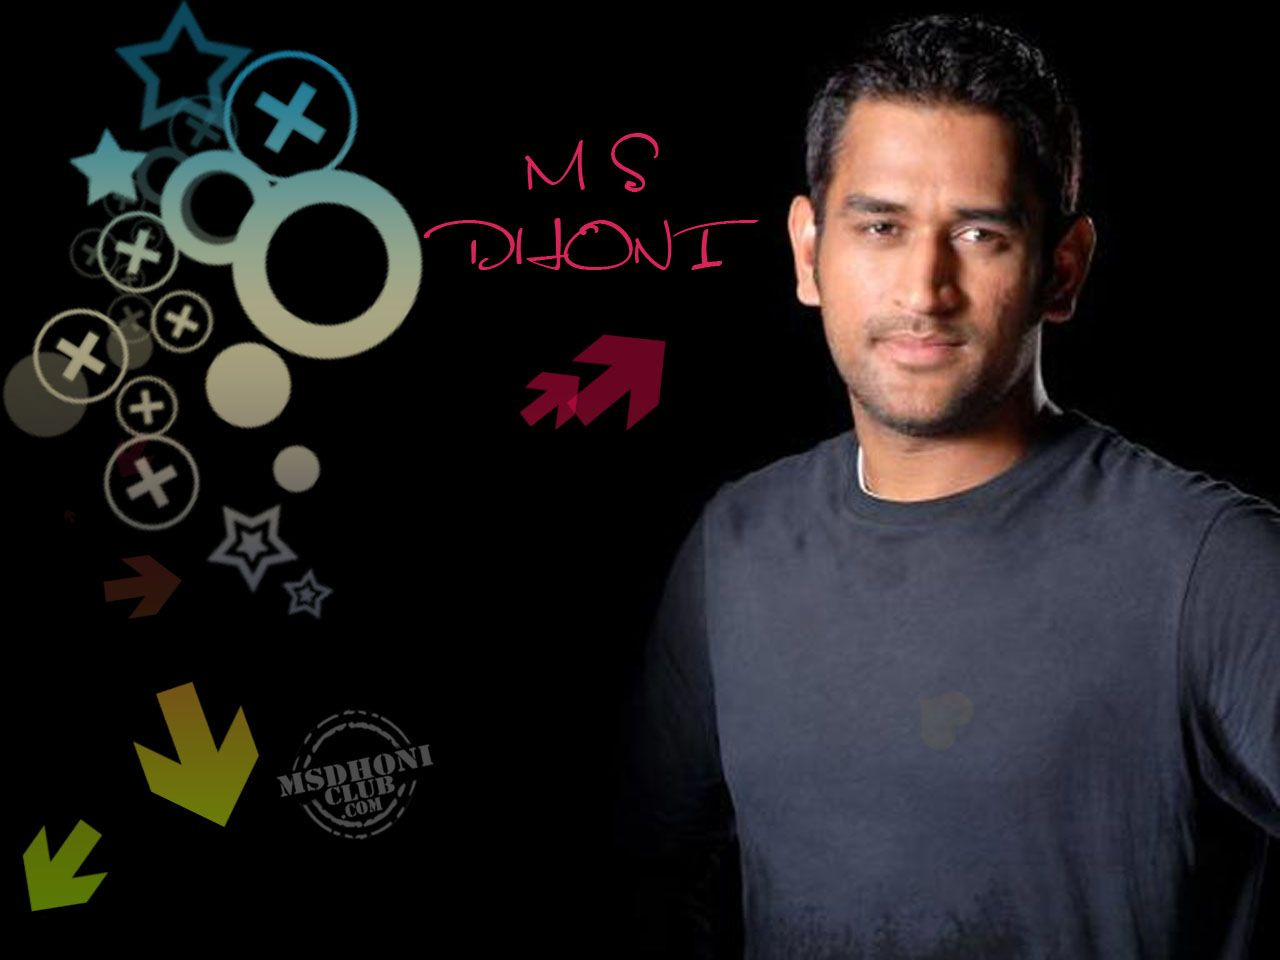 Ms dhoni net worth and earning with cars images a sports news - Mahendra Singh Dhoni Wallpaper